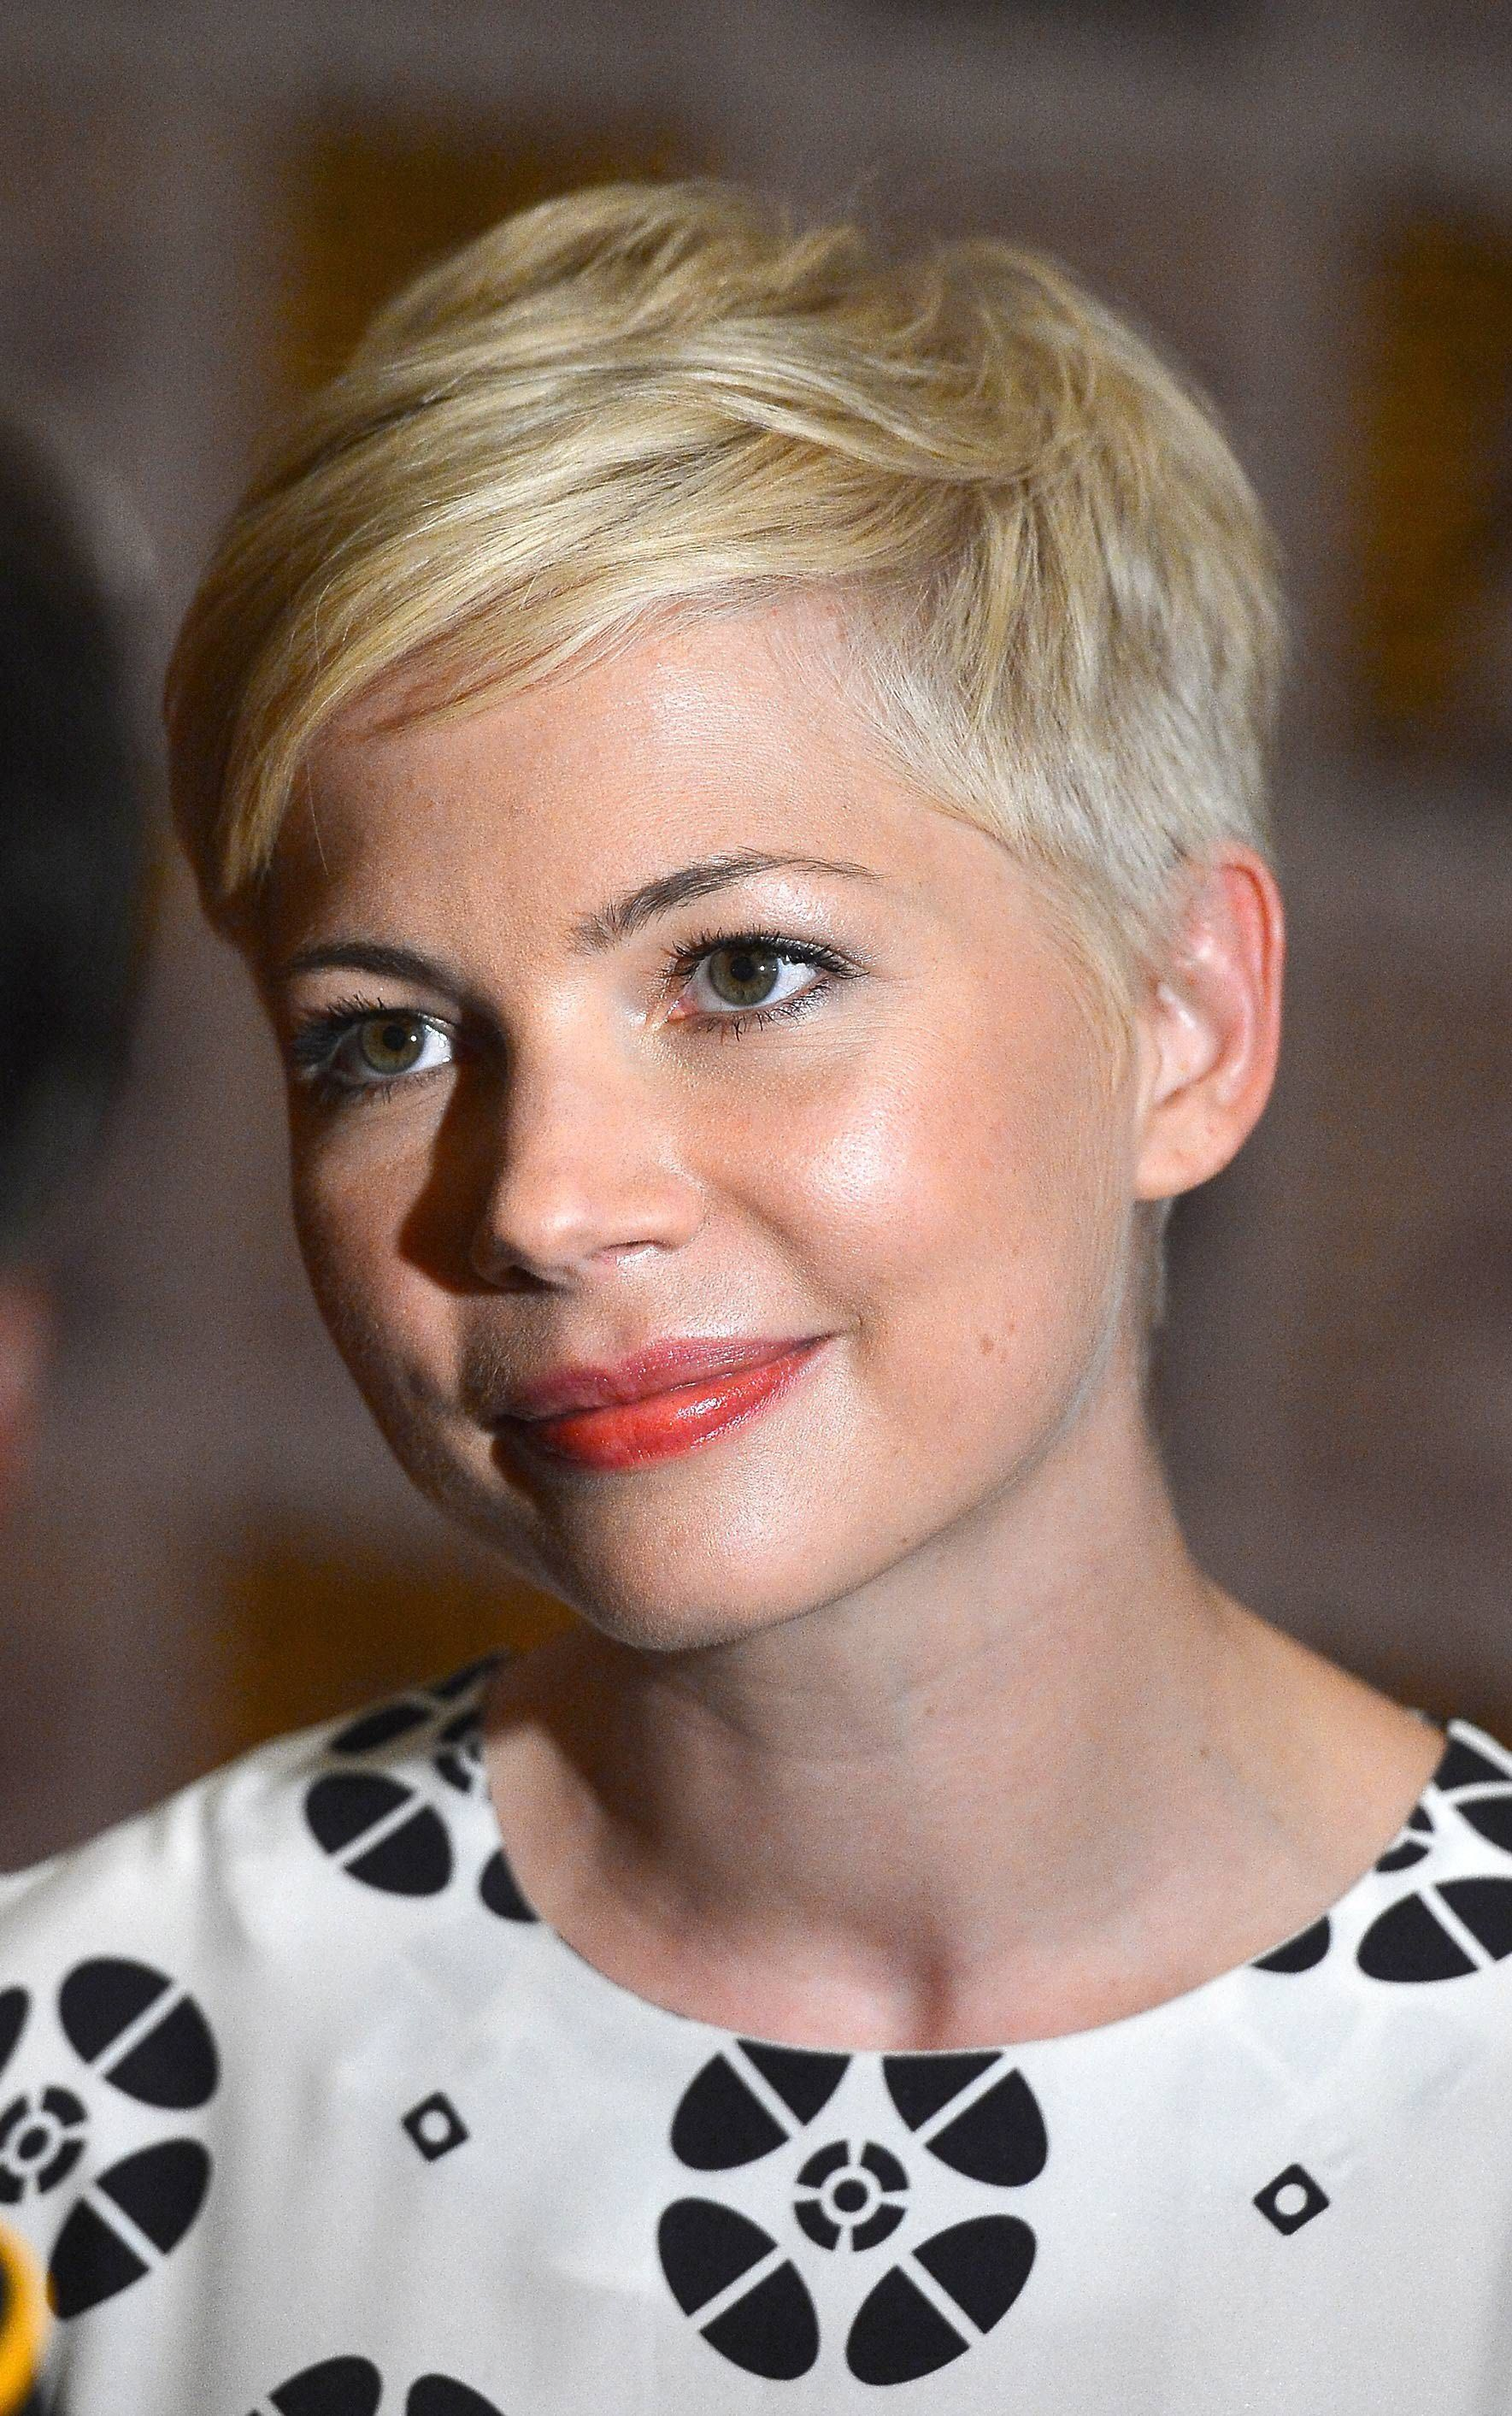 Marvelous 1000 Images About Inspiring Short Haircuts On Pinterest Short Hairstyles Gunalazisus